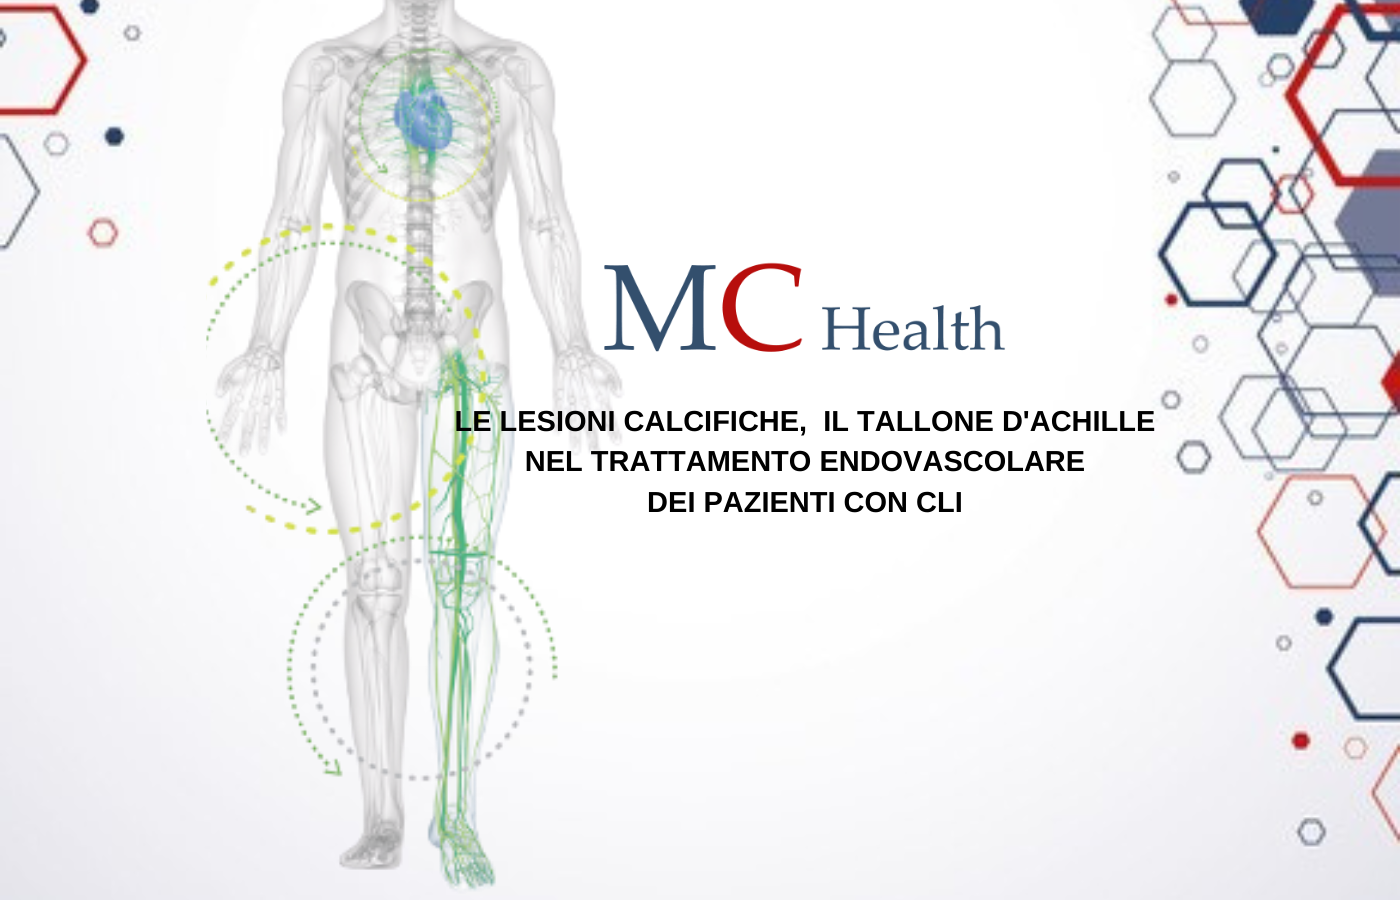 Calcified lesions, the Achilles heel in the endovascular treatment of CLI patients